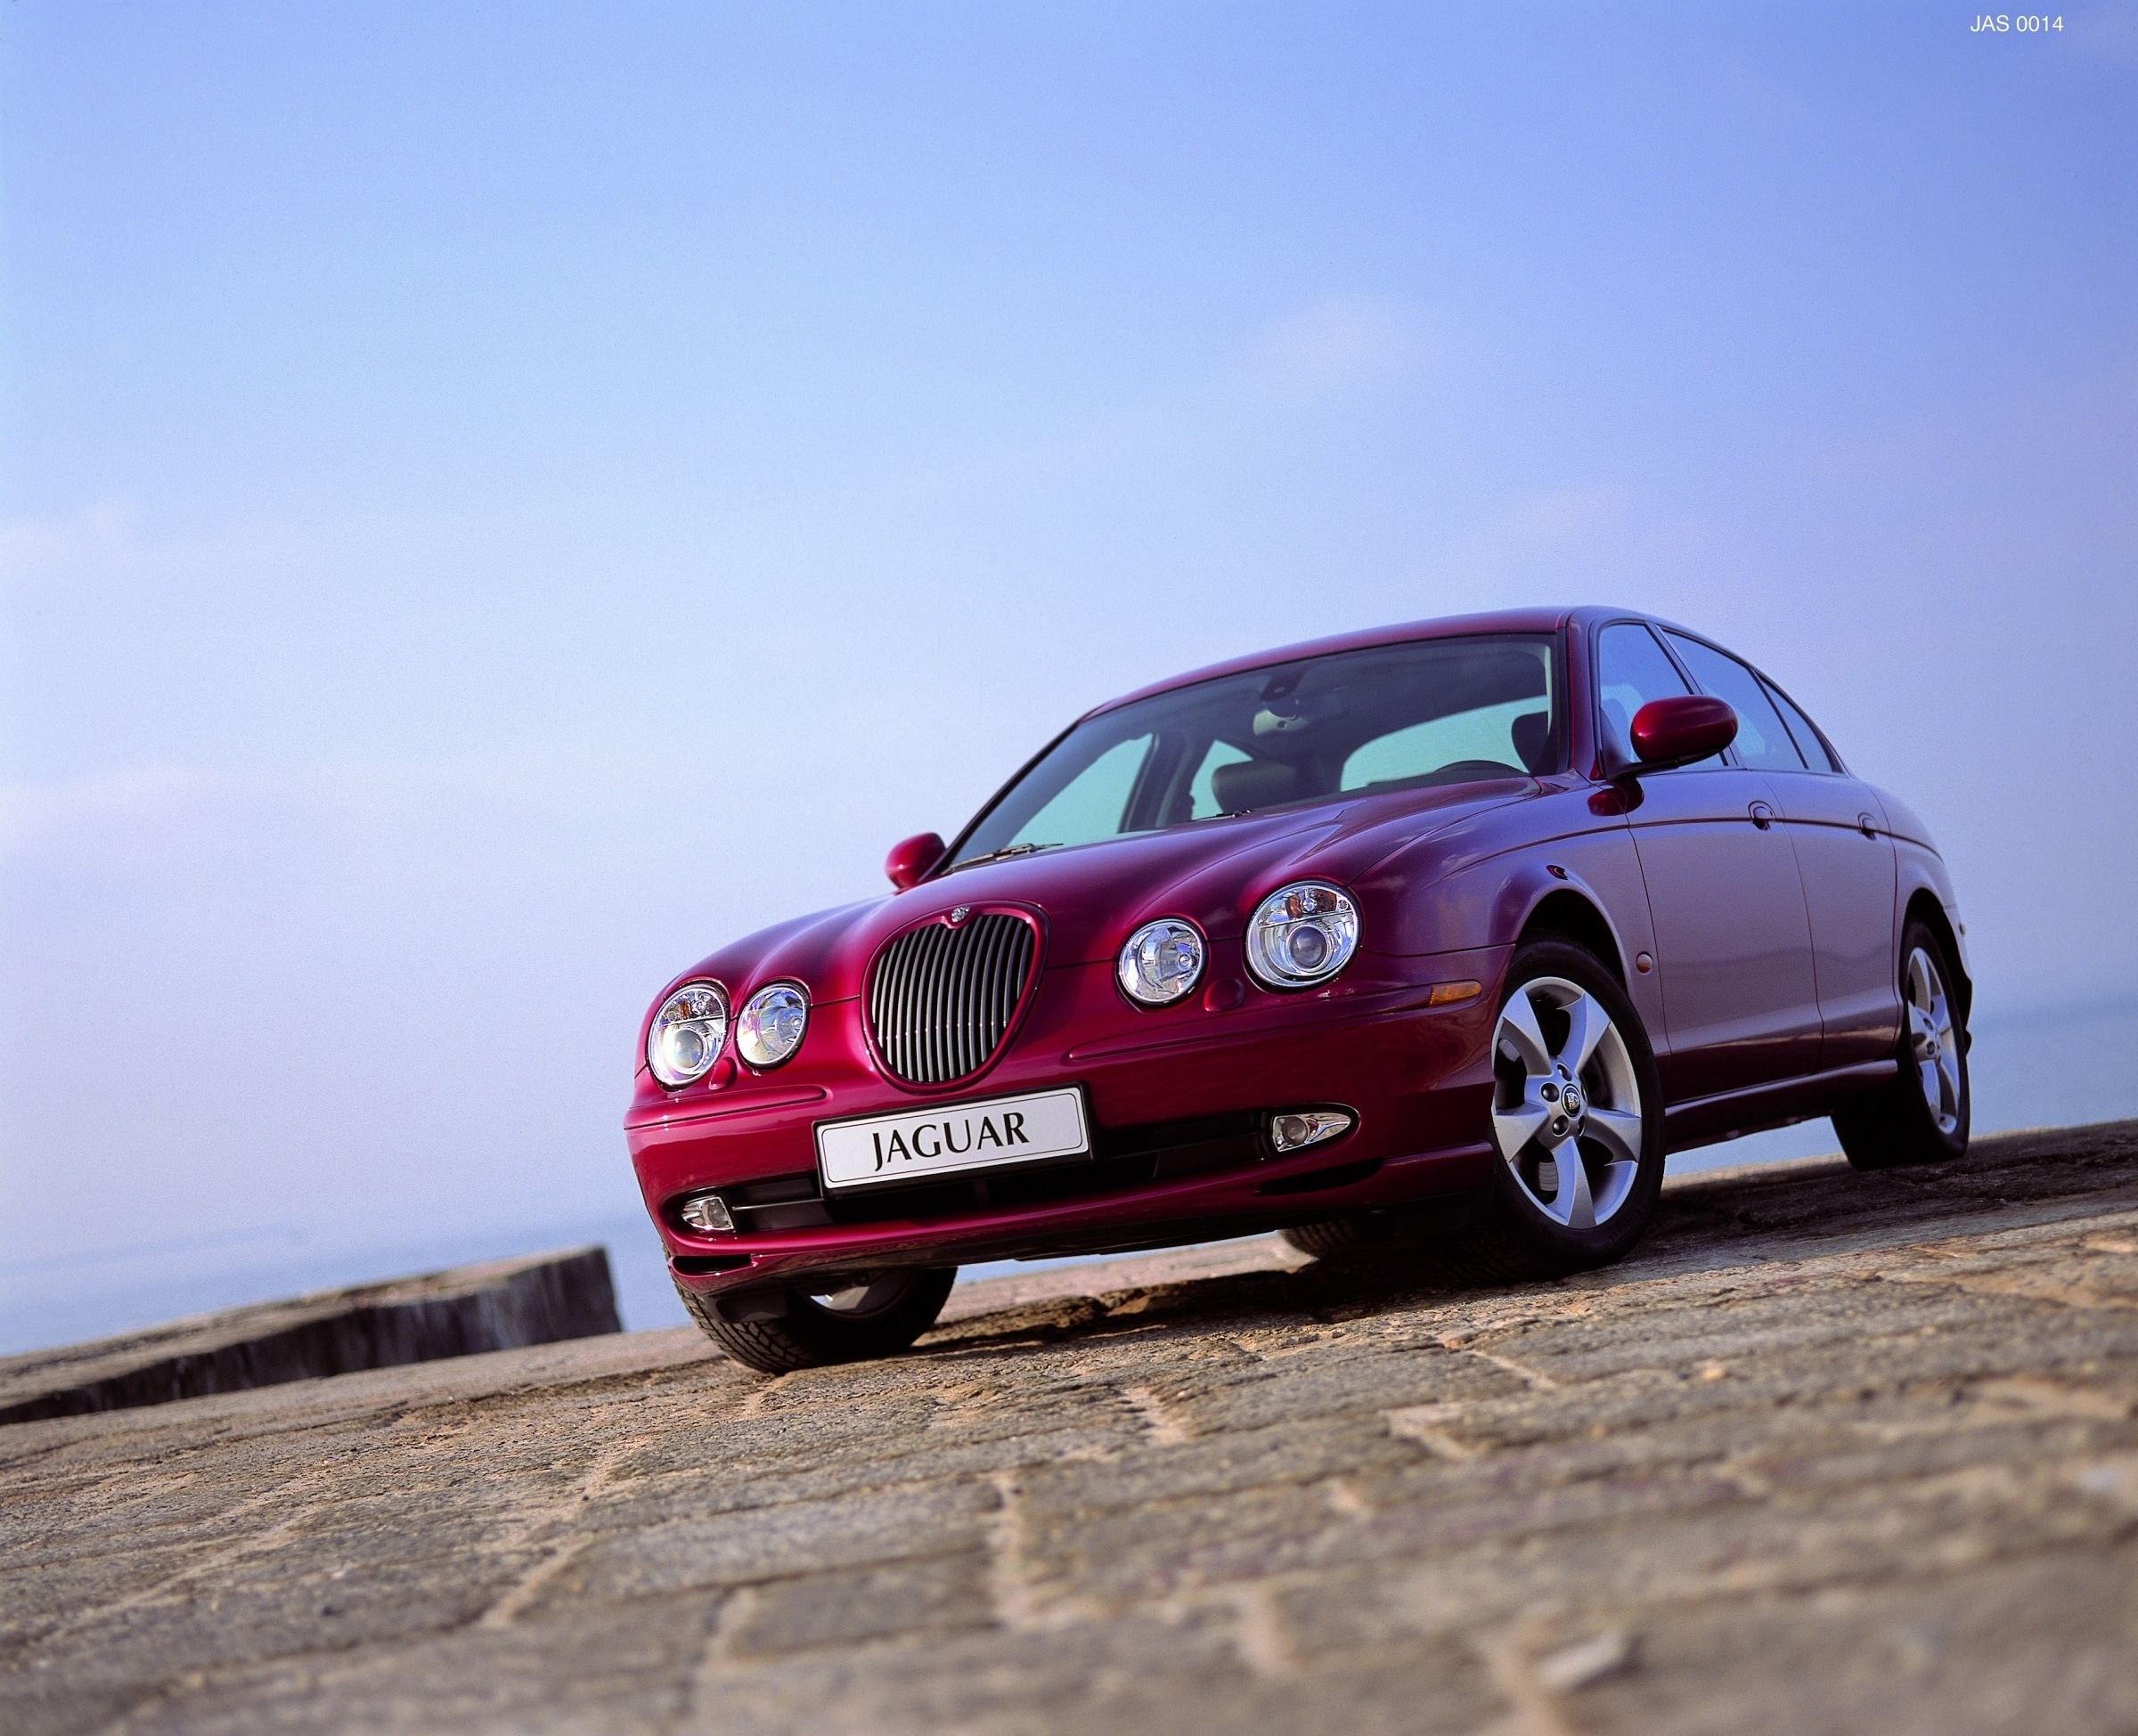 Jaguar S Type, Jaguar XJ, Jaguar, XJ, XJ6, XJ8, XJR, V8 straight-six, british car, gaydon, classic car, retro car, daimler, motoring, automotive, car, cars, british classic, gangster, snatch, ebay motors, autotrader